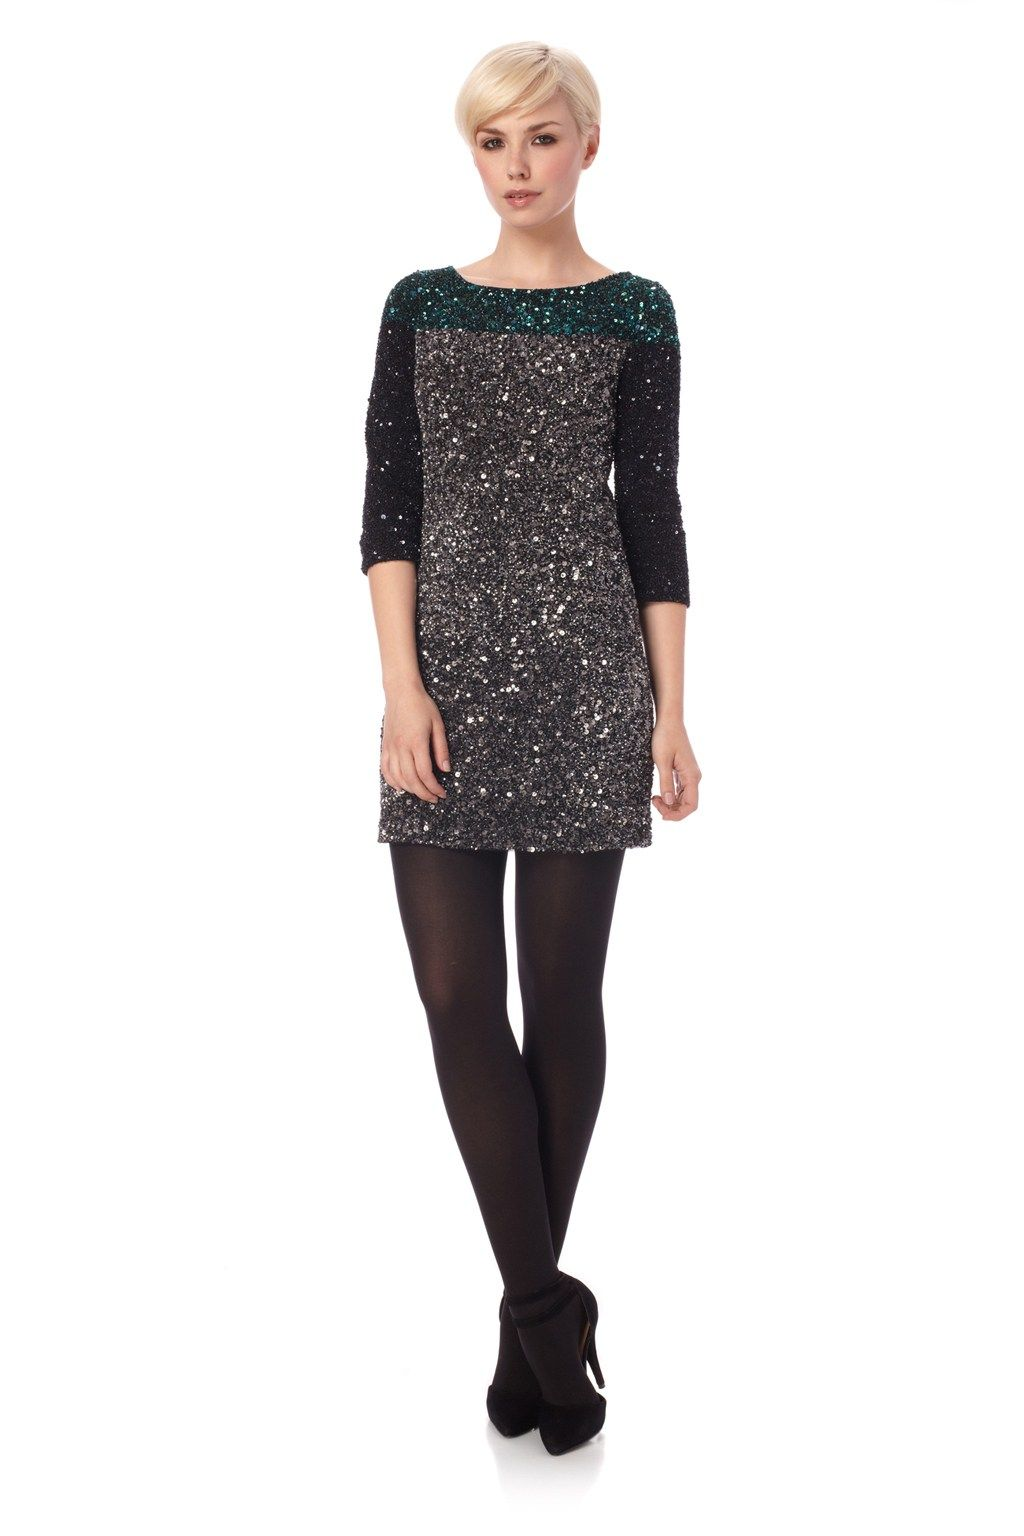 Spiegal Sequins Tunic Dress - Sale - French Connection | My Style ...